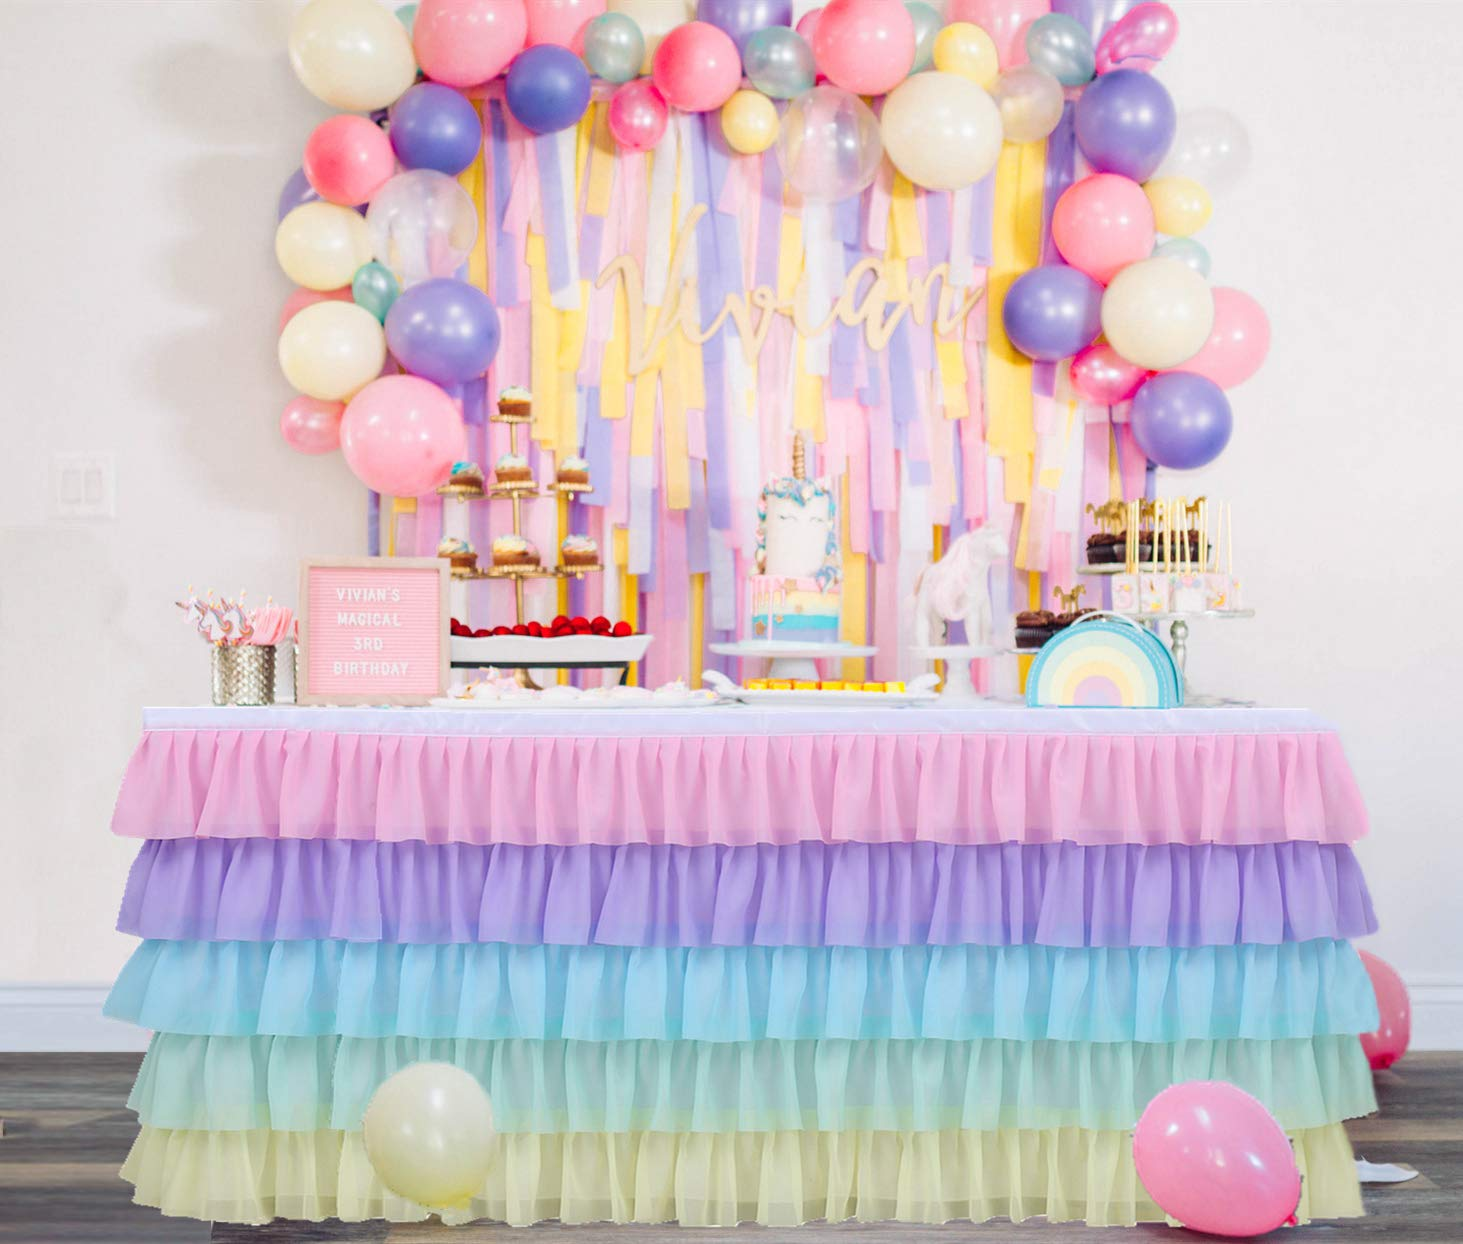 9FT Rainbow Tulle Table Skirt Tutu Table Clothing for Stage Performance Birthday Baby Shower Party Decoration,Unicorn Table Skirt for Rectangle and Round Tables. by Tulle Dream